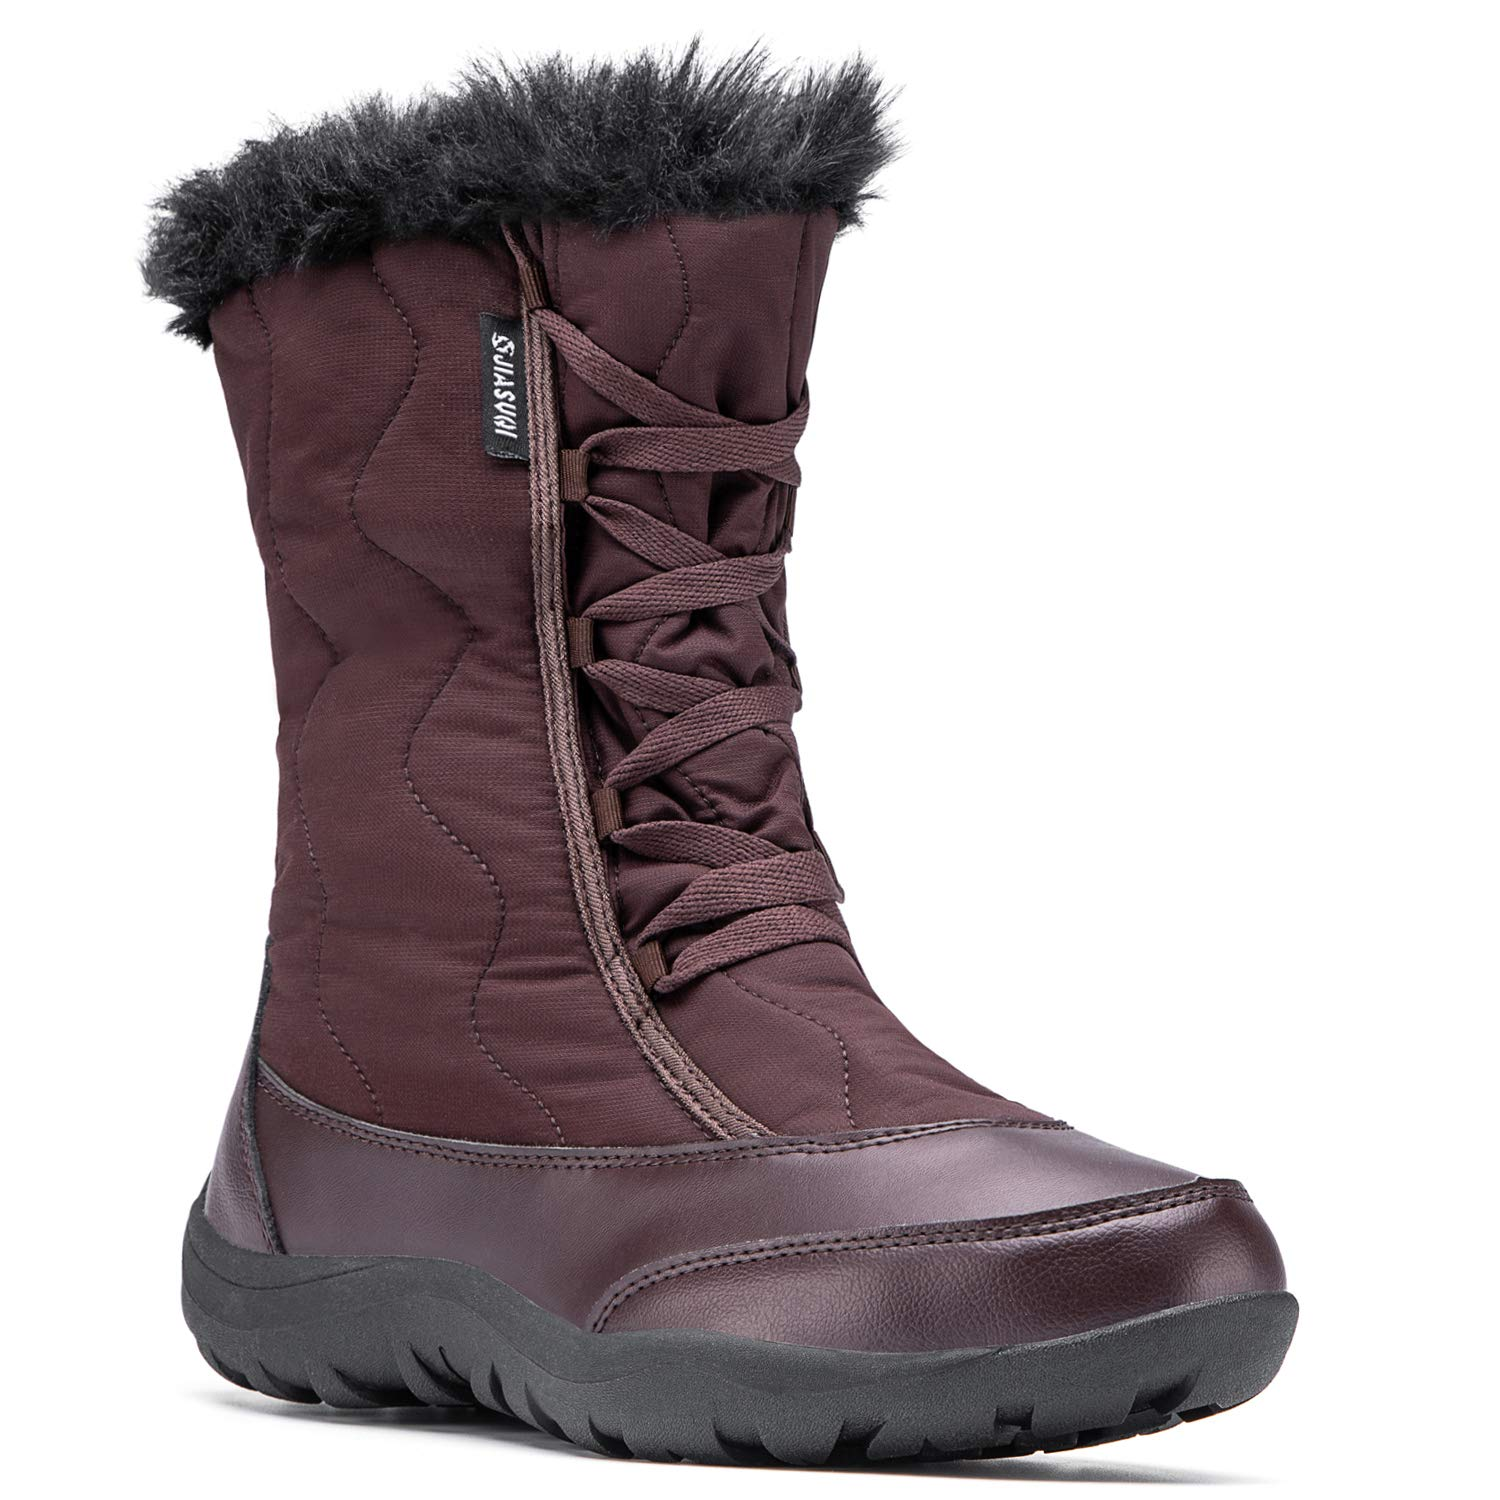 Leisfit Womens Mid Claf Outdoor Warm Winter Boots Casual Warm Fur Shoes for Woman Girl Brown 9.5